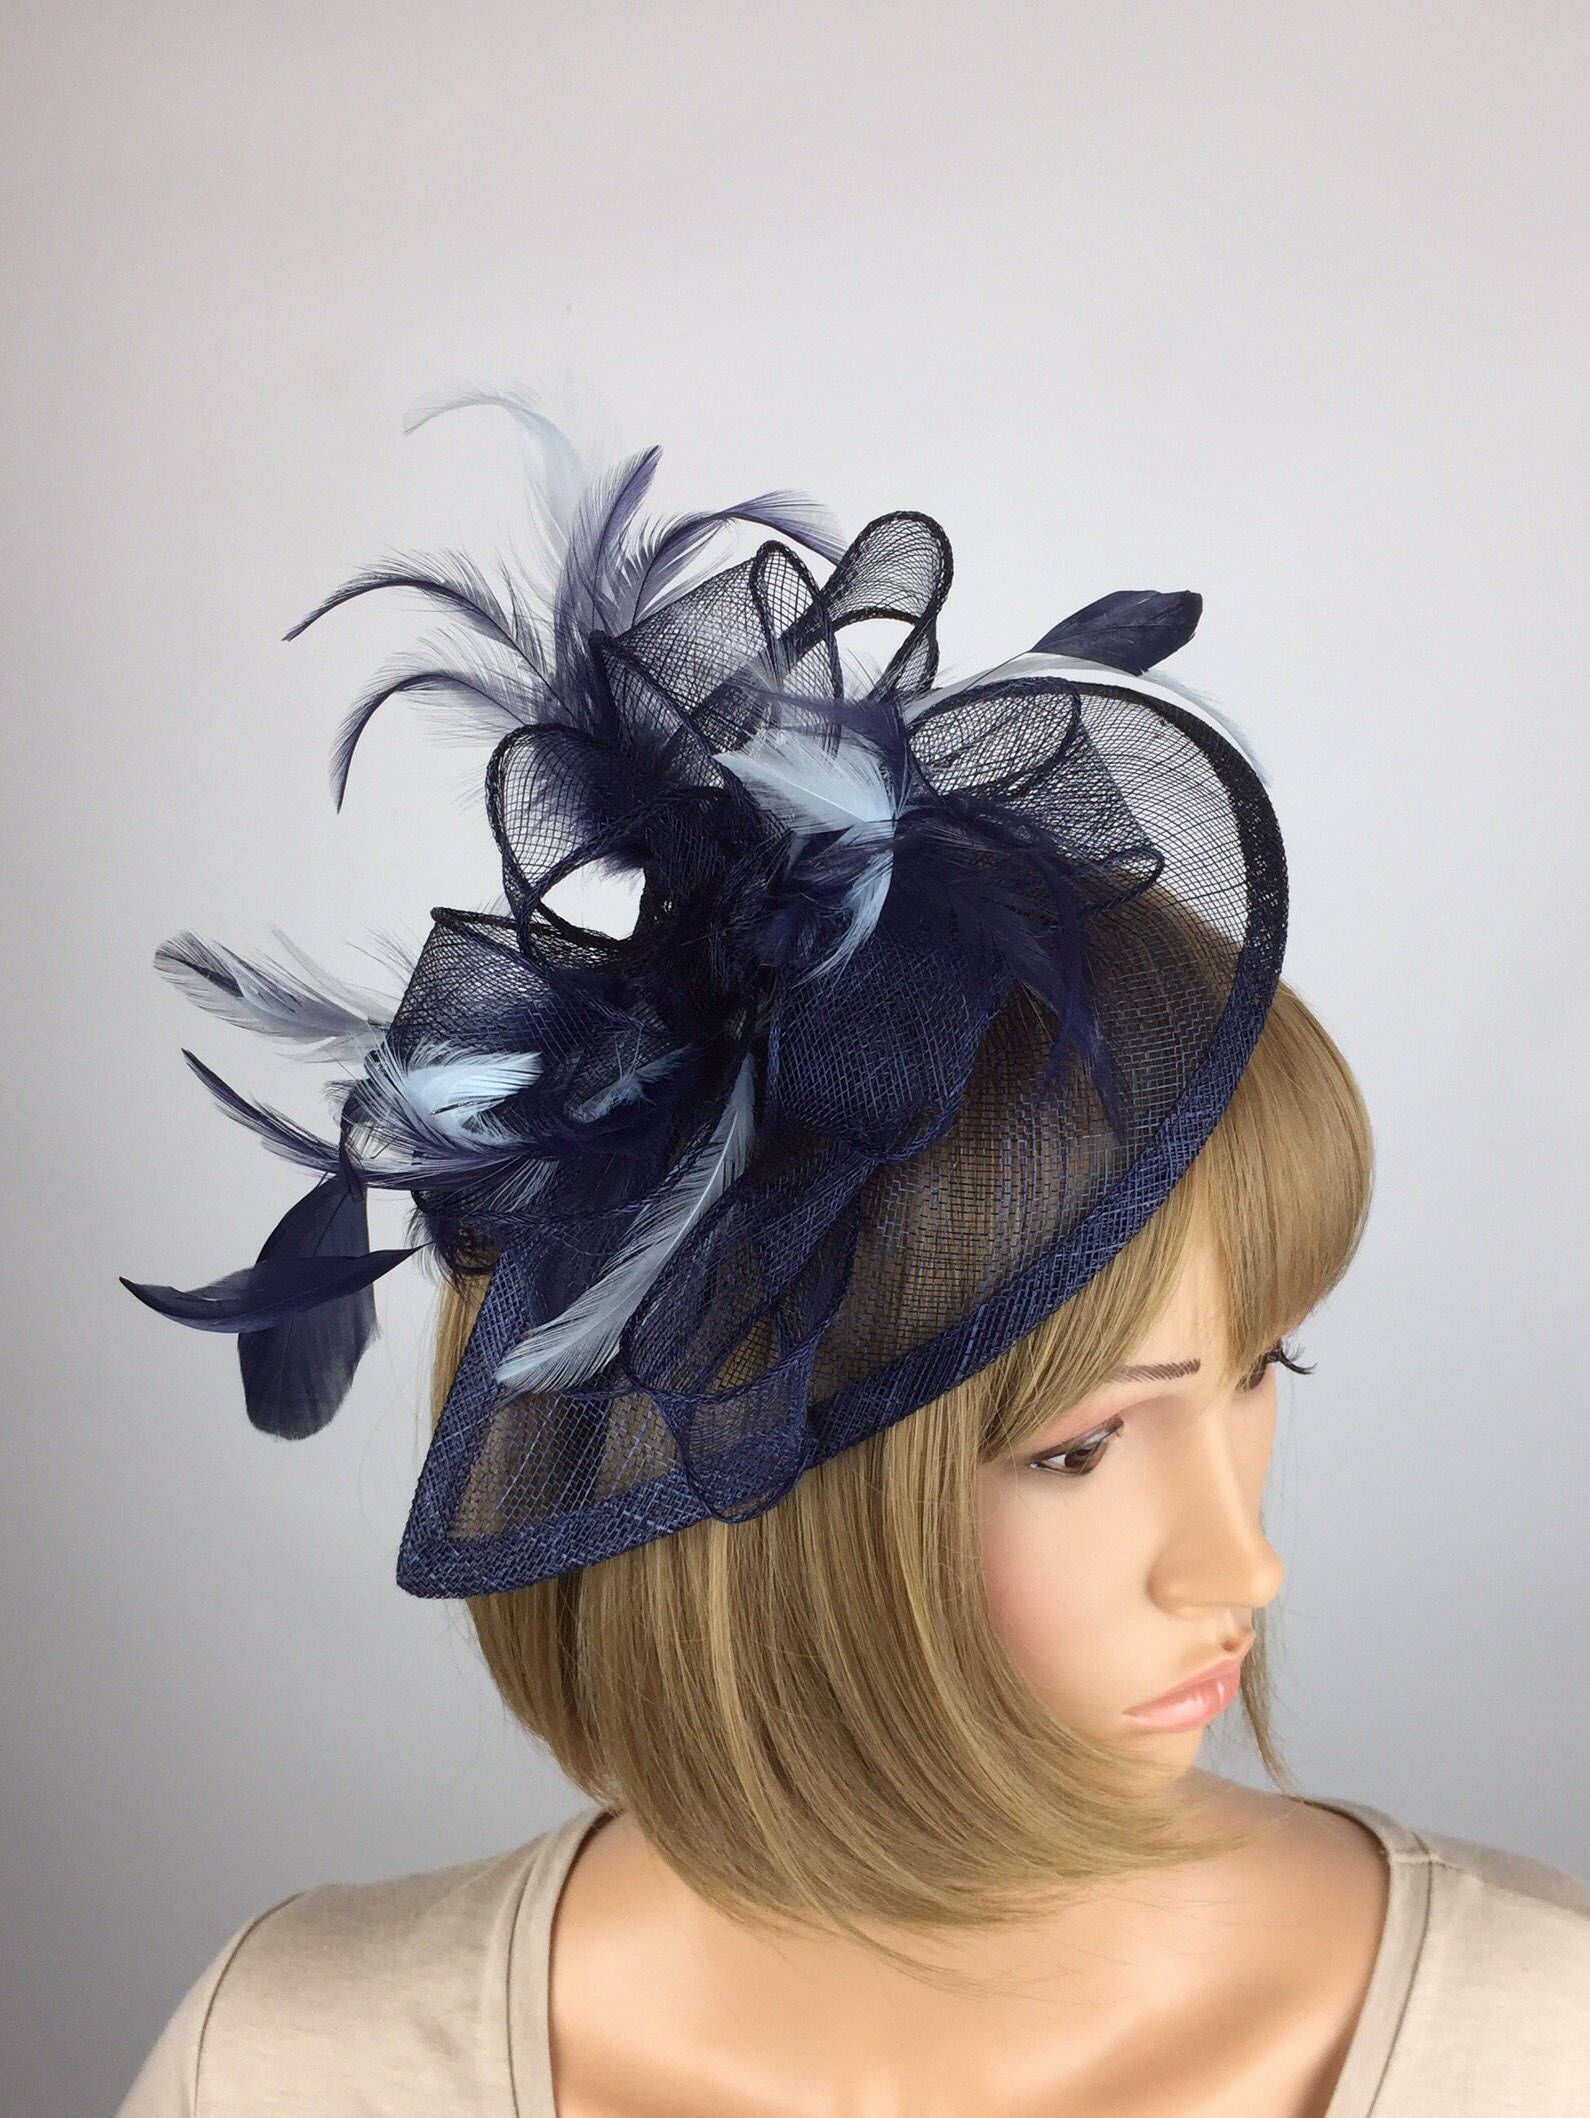 BLACK HAT FEATHERS SINAMAY FASCINATOR WEDDING ASCOT RACE HEN PARTY LADIES DAY